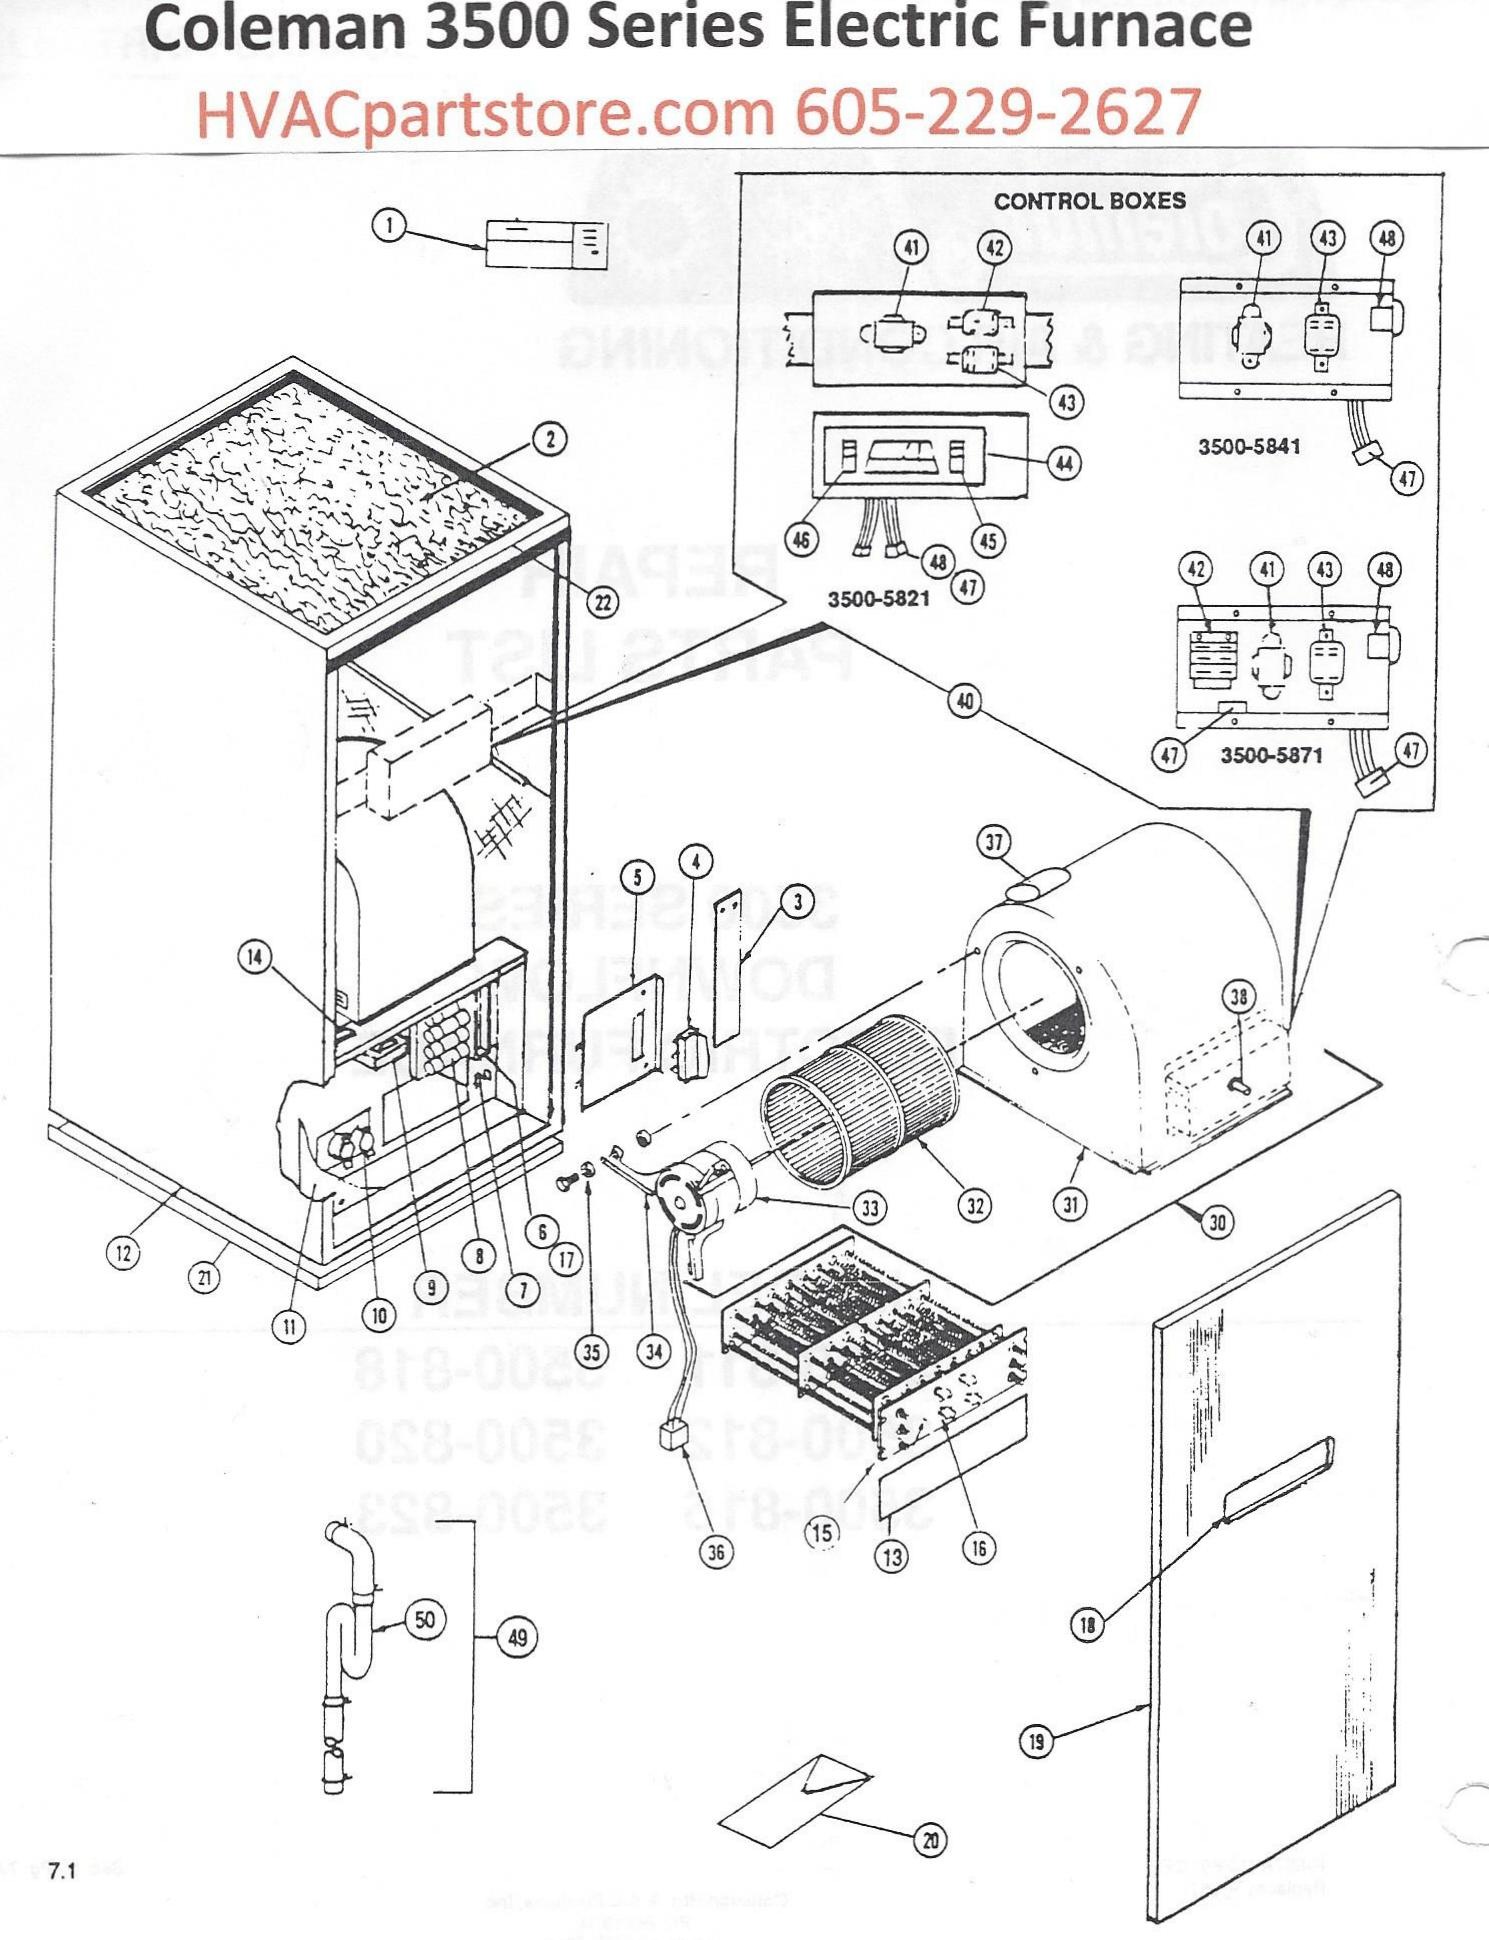 click here to view an installation manual which includes wiring diagrams